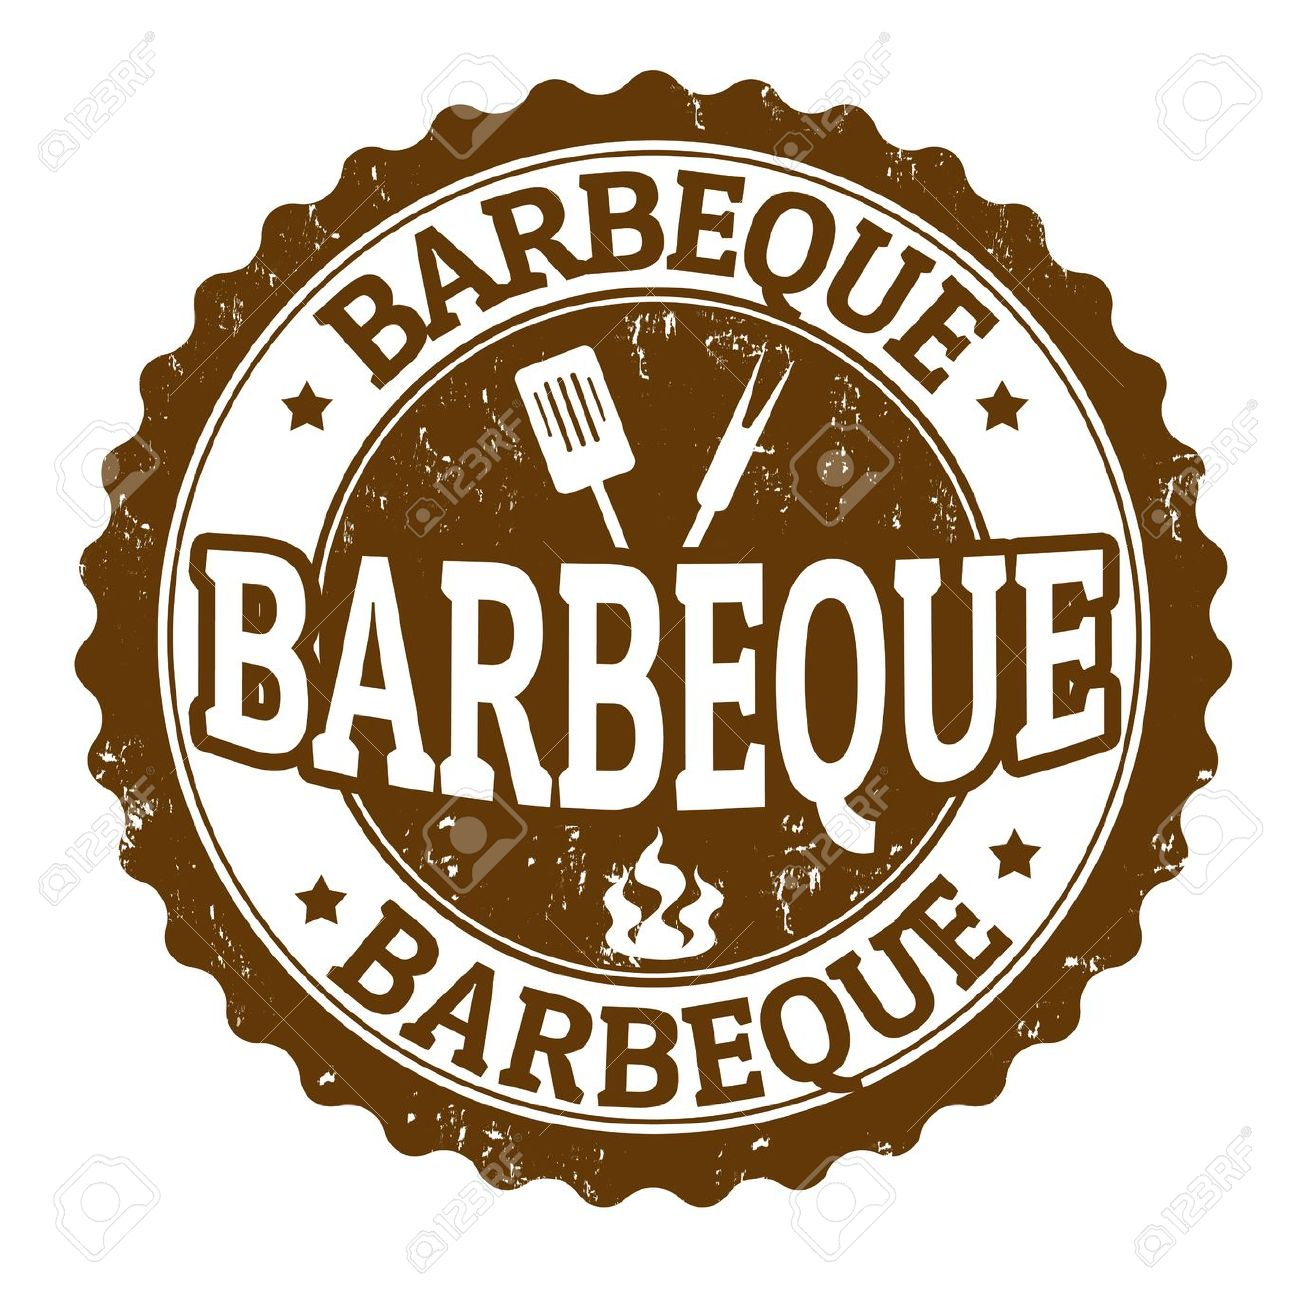 Bbq free images gclipart. Barbecue clipart church